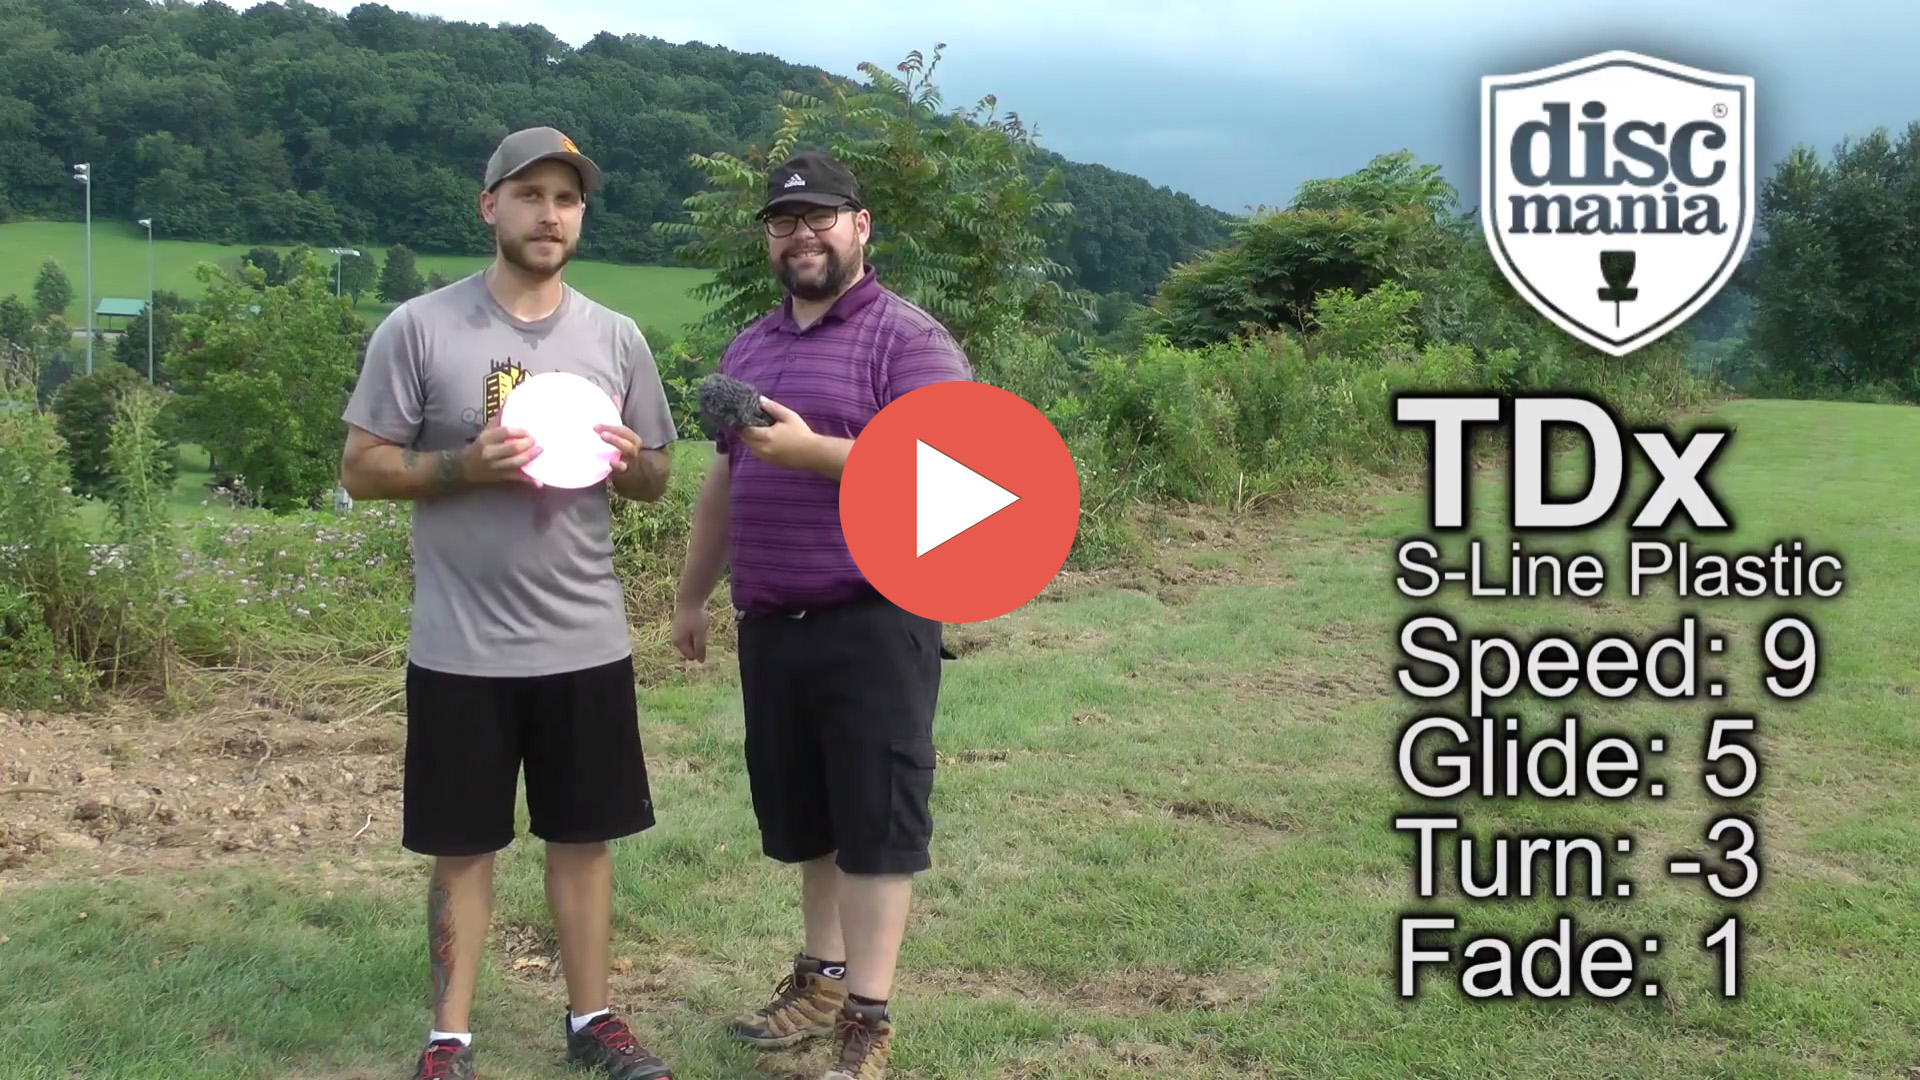 Discmania TDx in S-Line Plastic Review – First Look